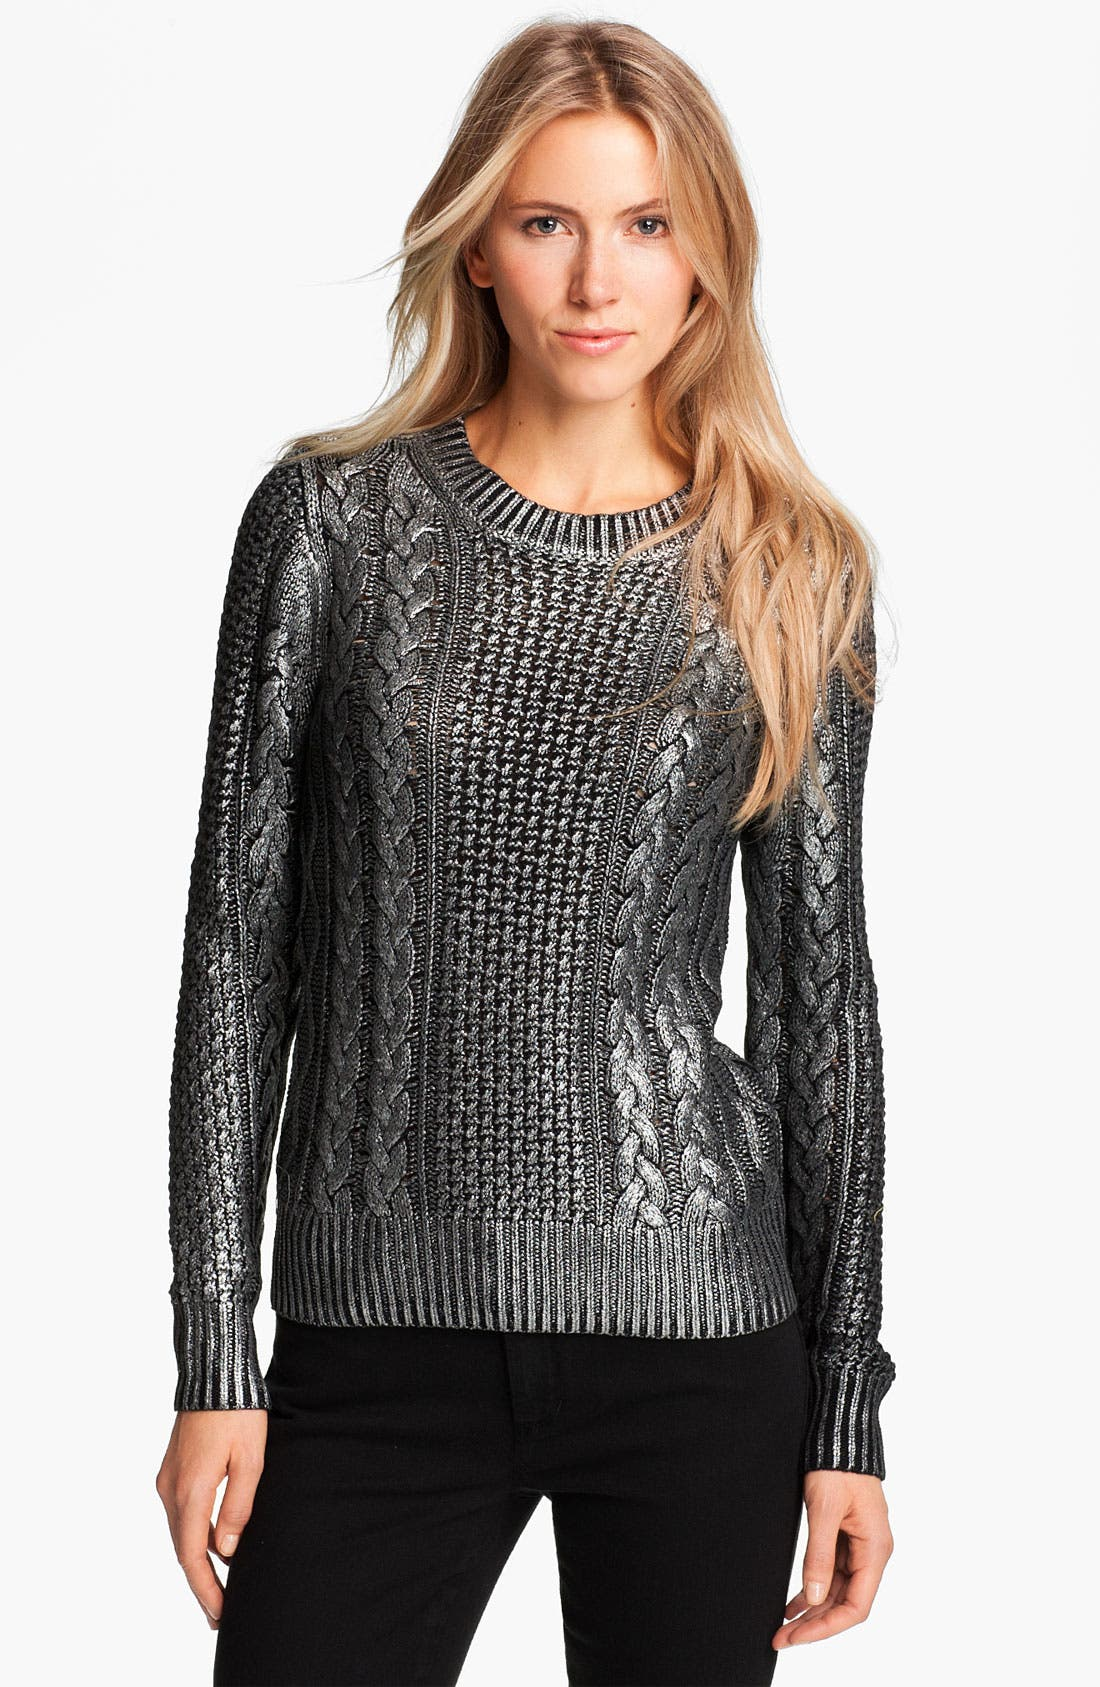 Alternate Image 1 Selected - MICHAEL Michael Kors Foiled Fisherman's Knit Sweater (Petite)